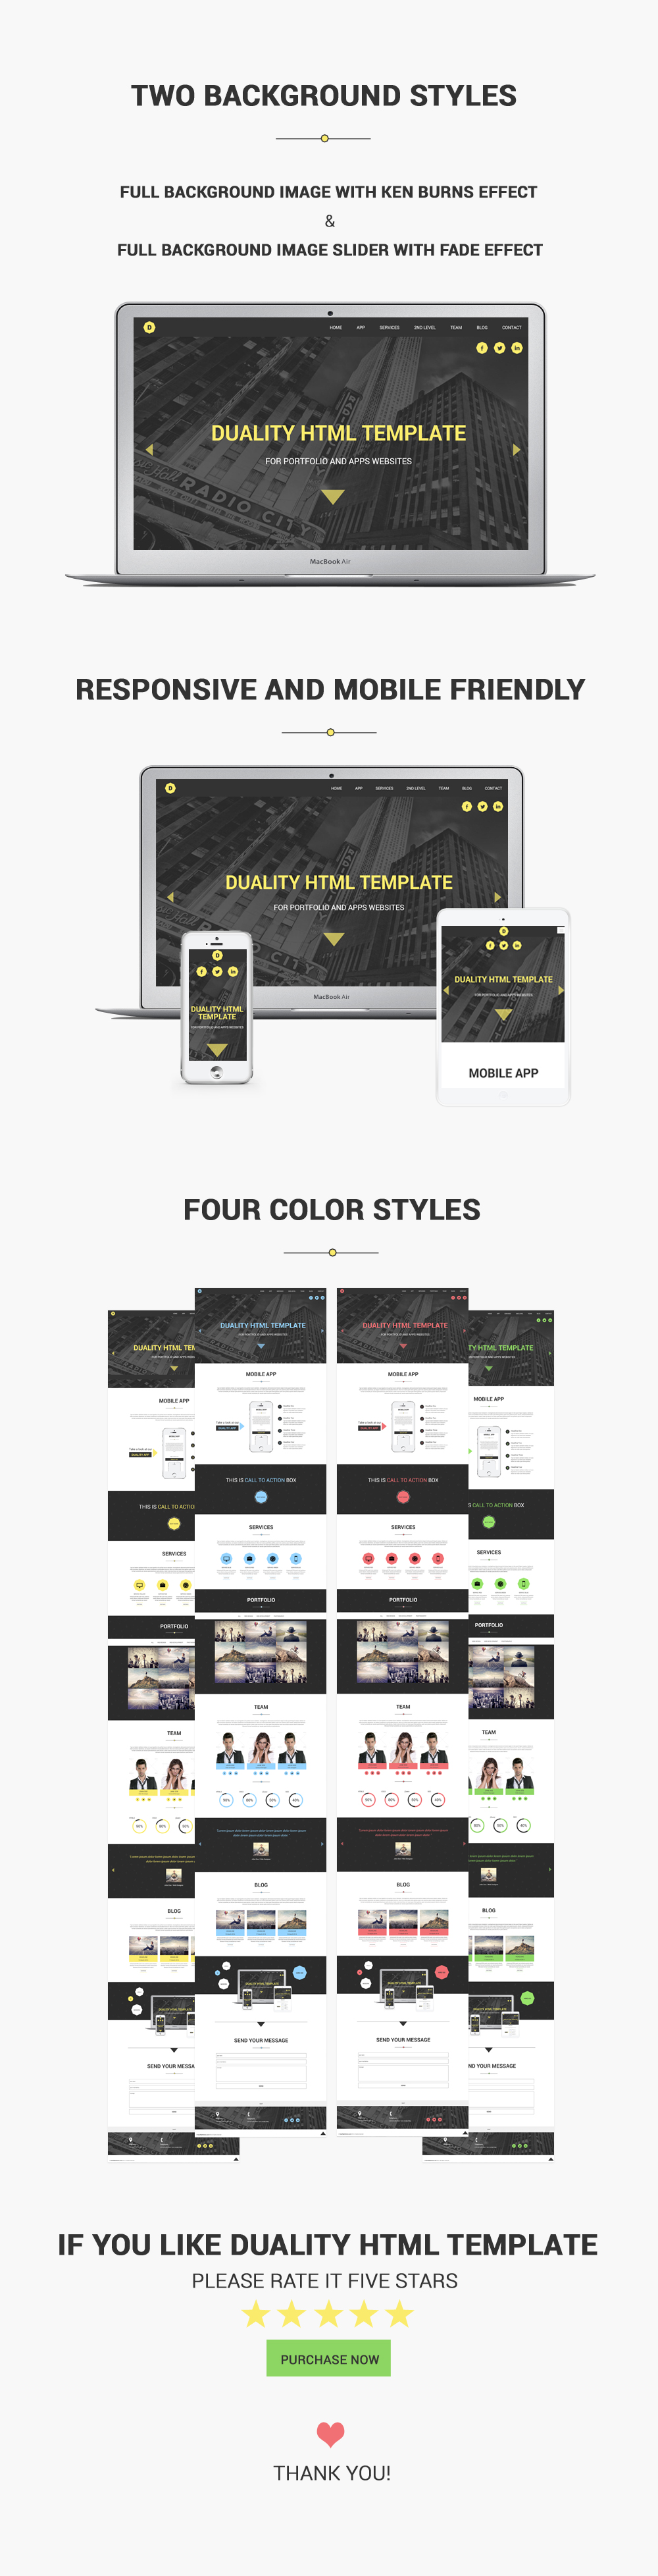 Duality - Portfolio and Apps HTML5 Template by rayoflightt | ThemeForest